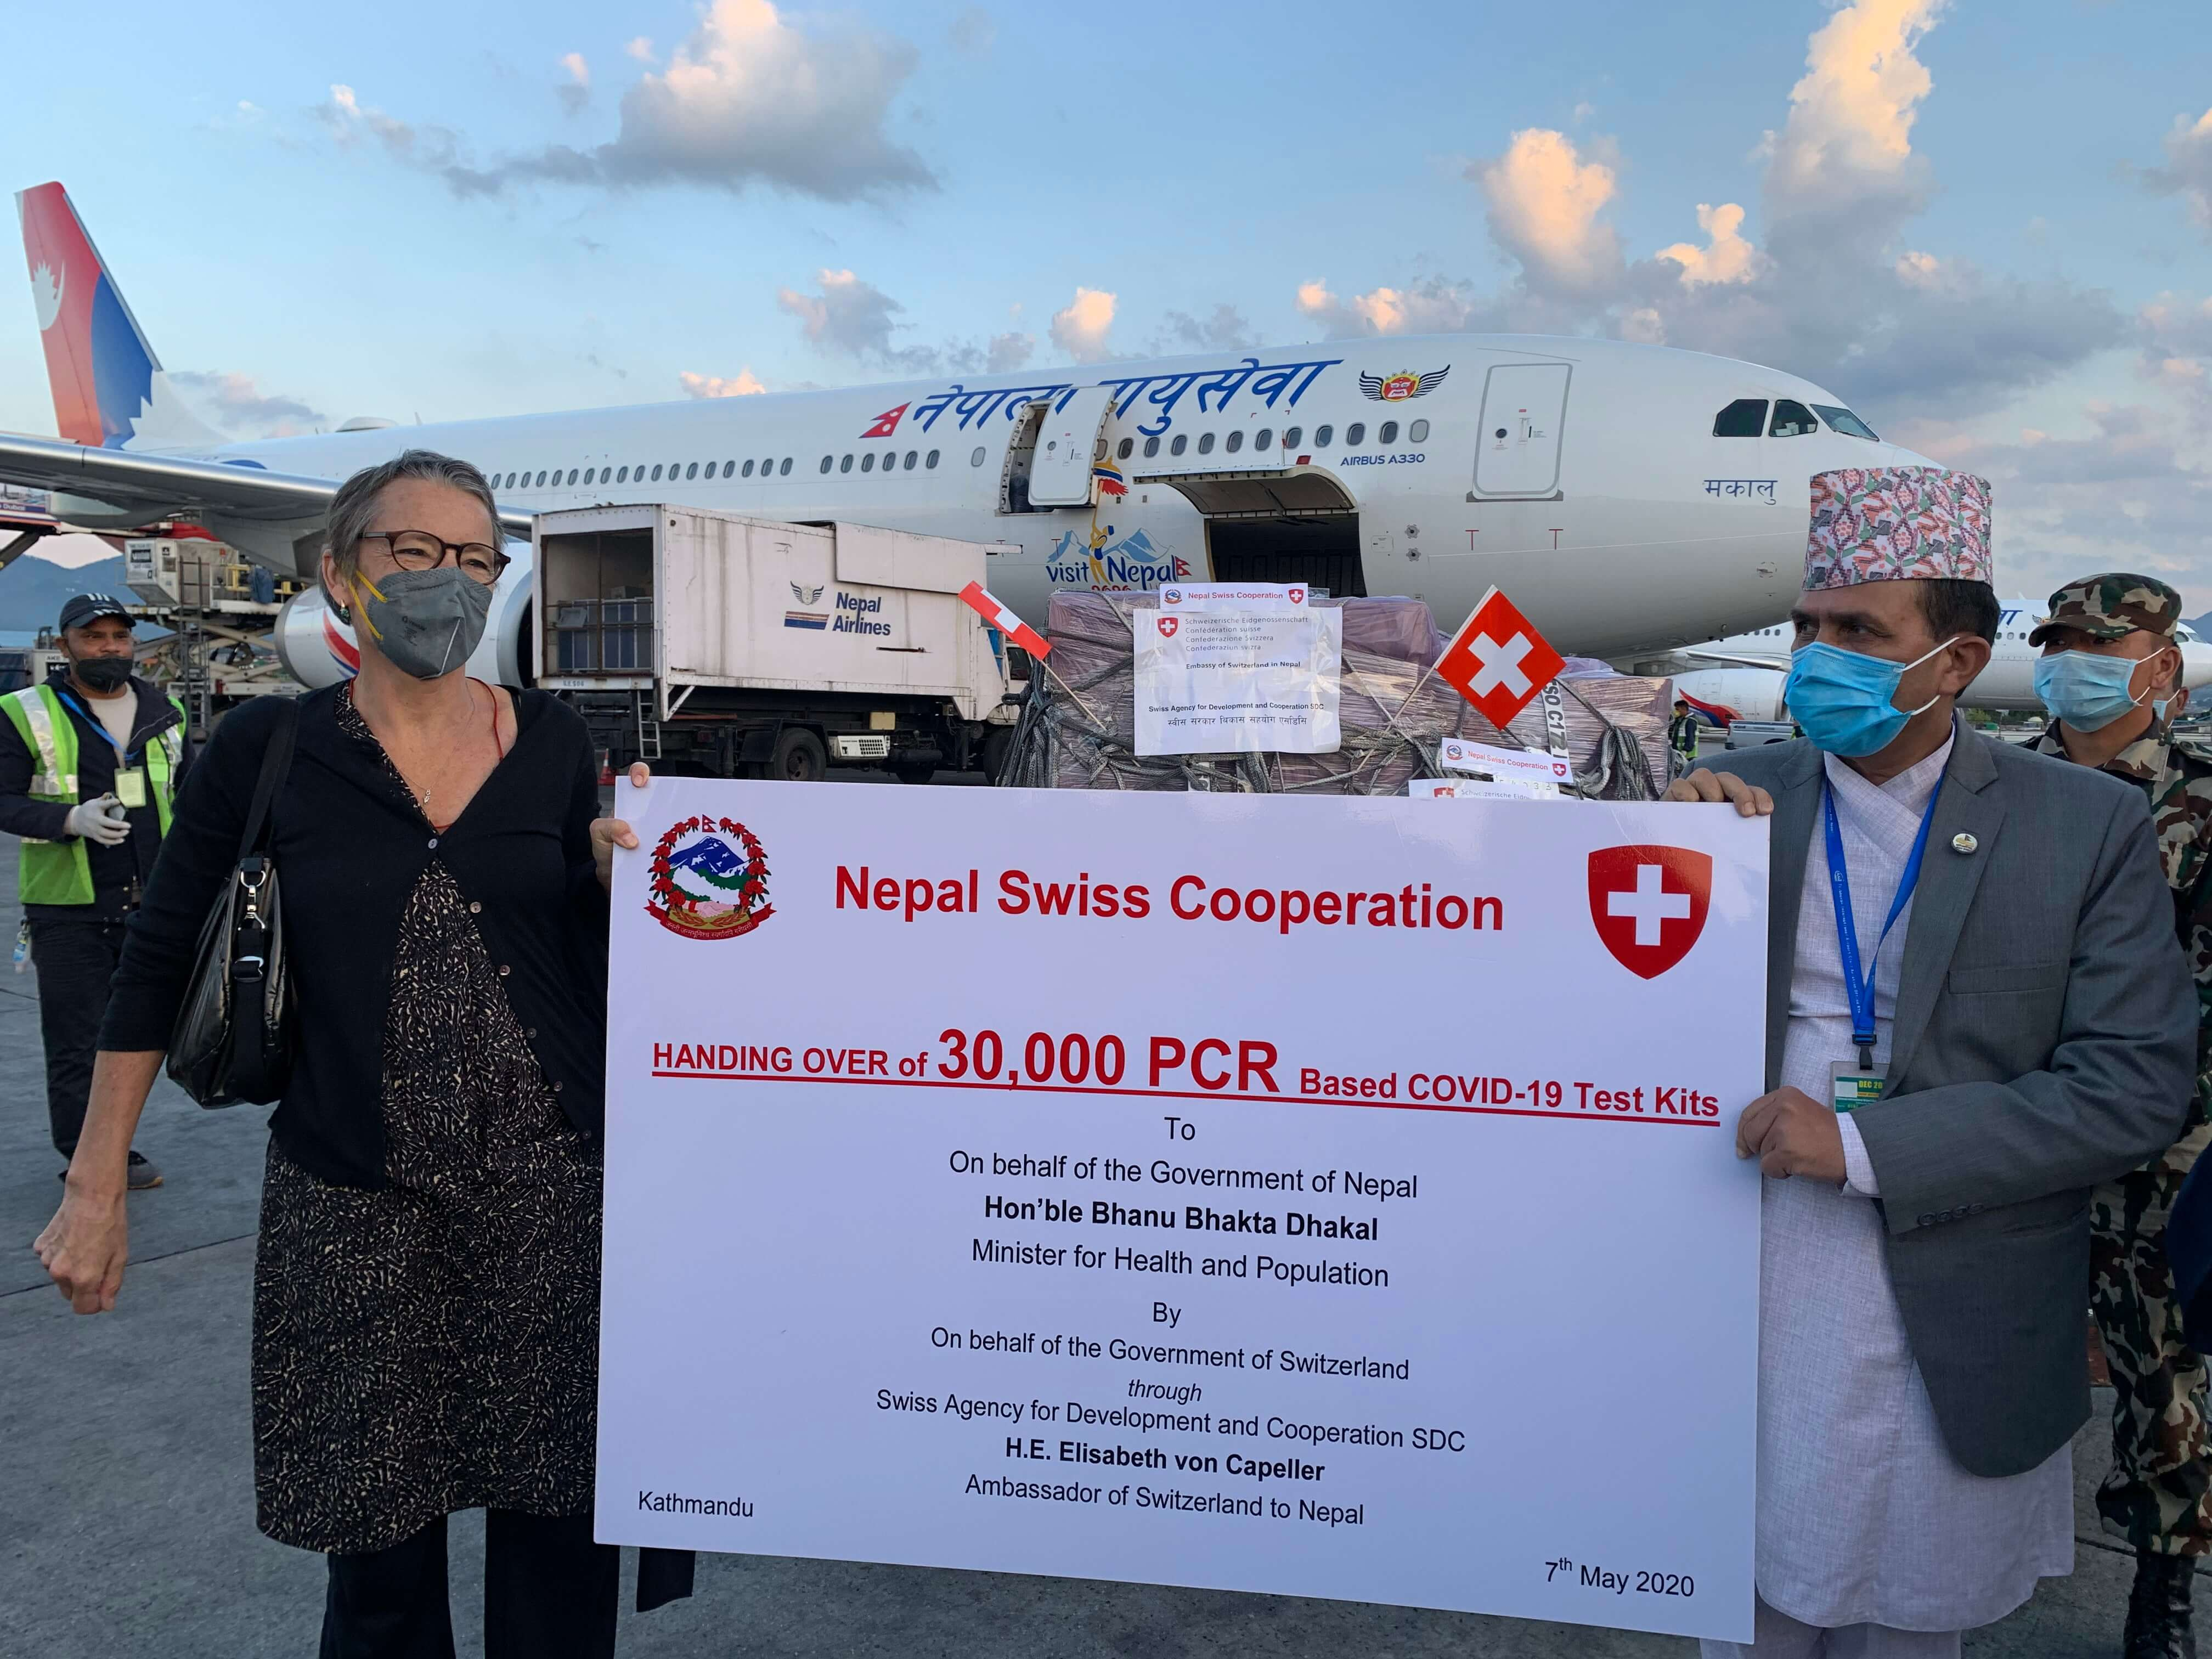 Swiss PCRs for Nepal COVID-19 testing